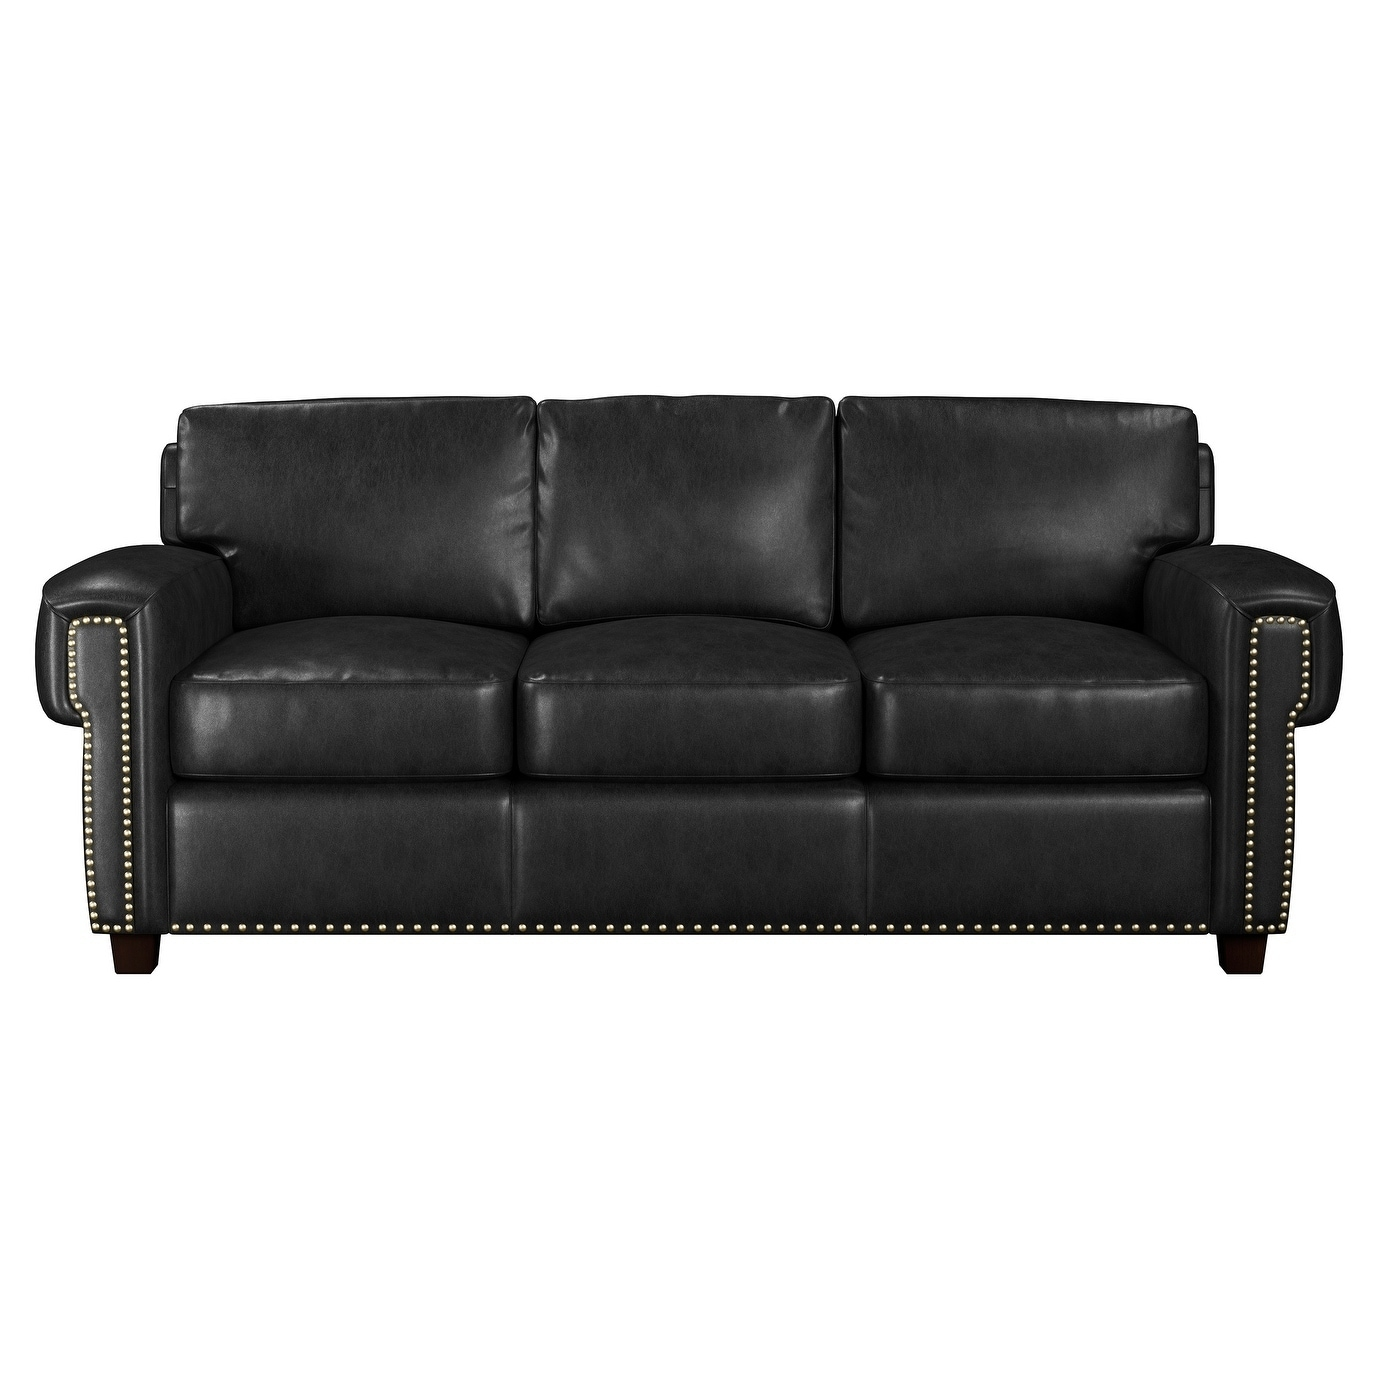 Pleasant Made To Order Como 100 Top Grain Leather Sofa Ncnpc Chair Design For Home Ncnpcorg